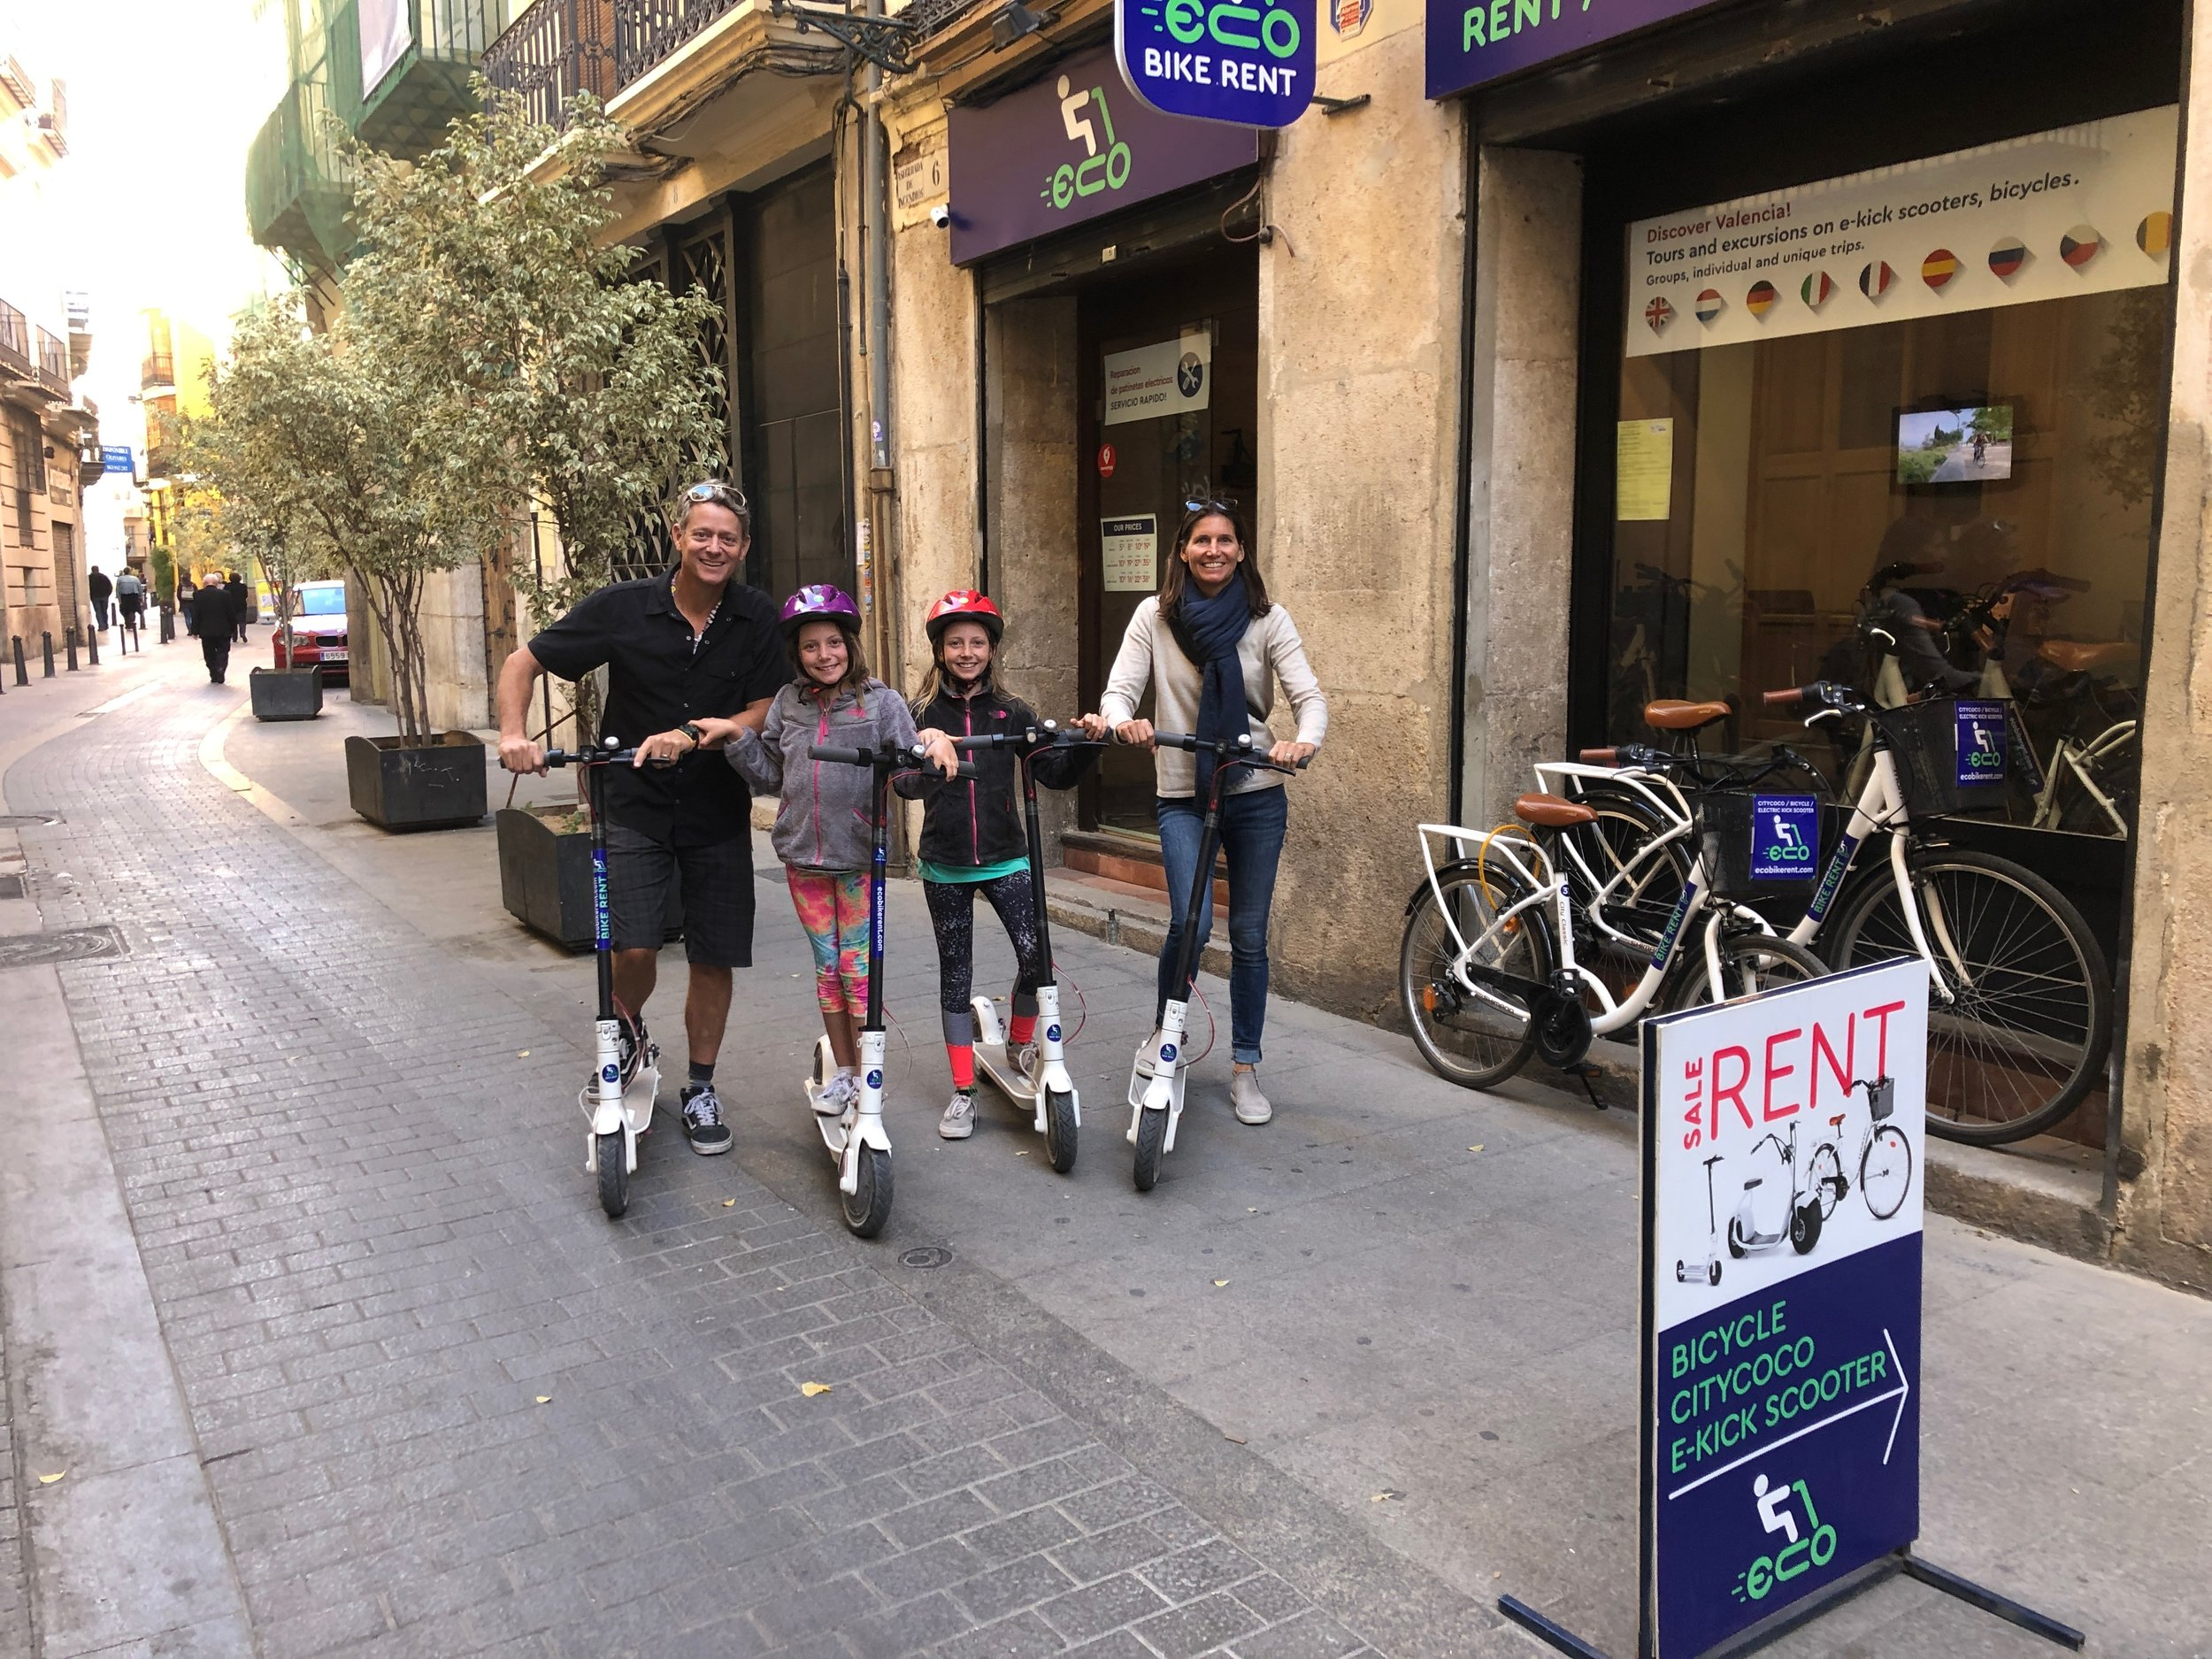 Getting ready to ride our scooters